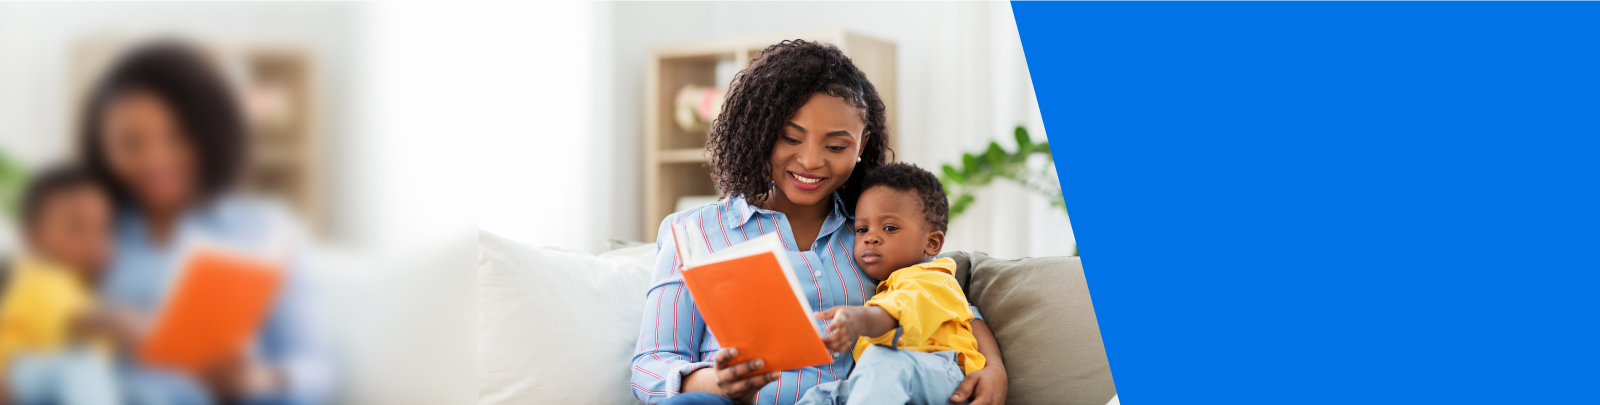 A mother reading a book to her child in their home.